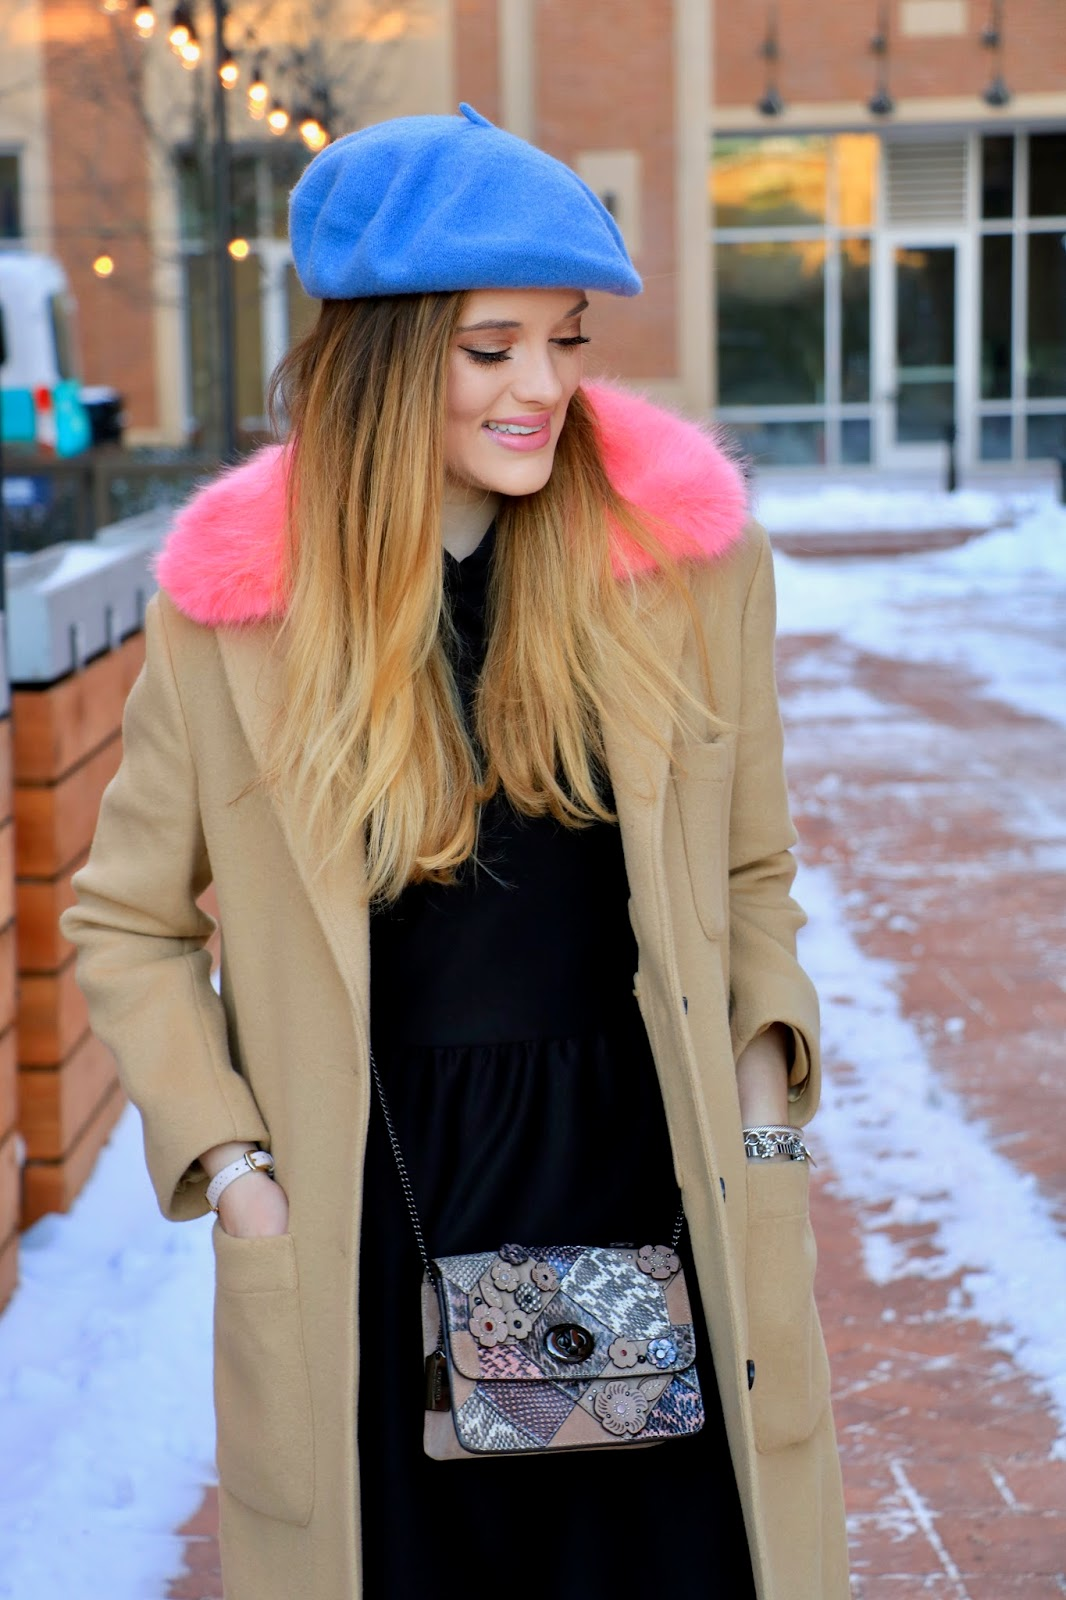 Nyc fashion blogger Kathleen Harper wearing a Rebecca Minkoff pink fur coat